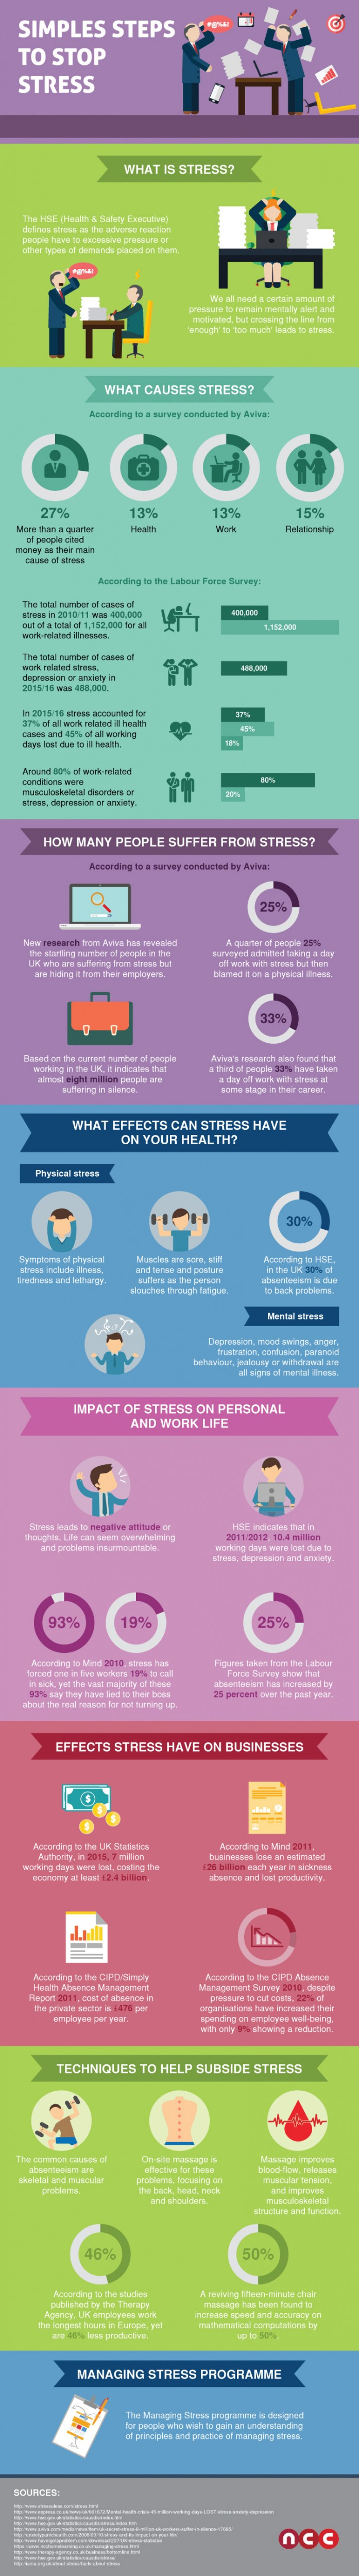 simple-steps-to-subside-stress